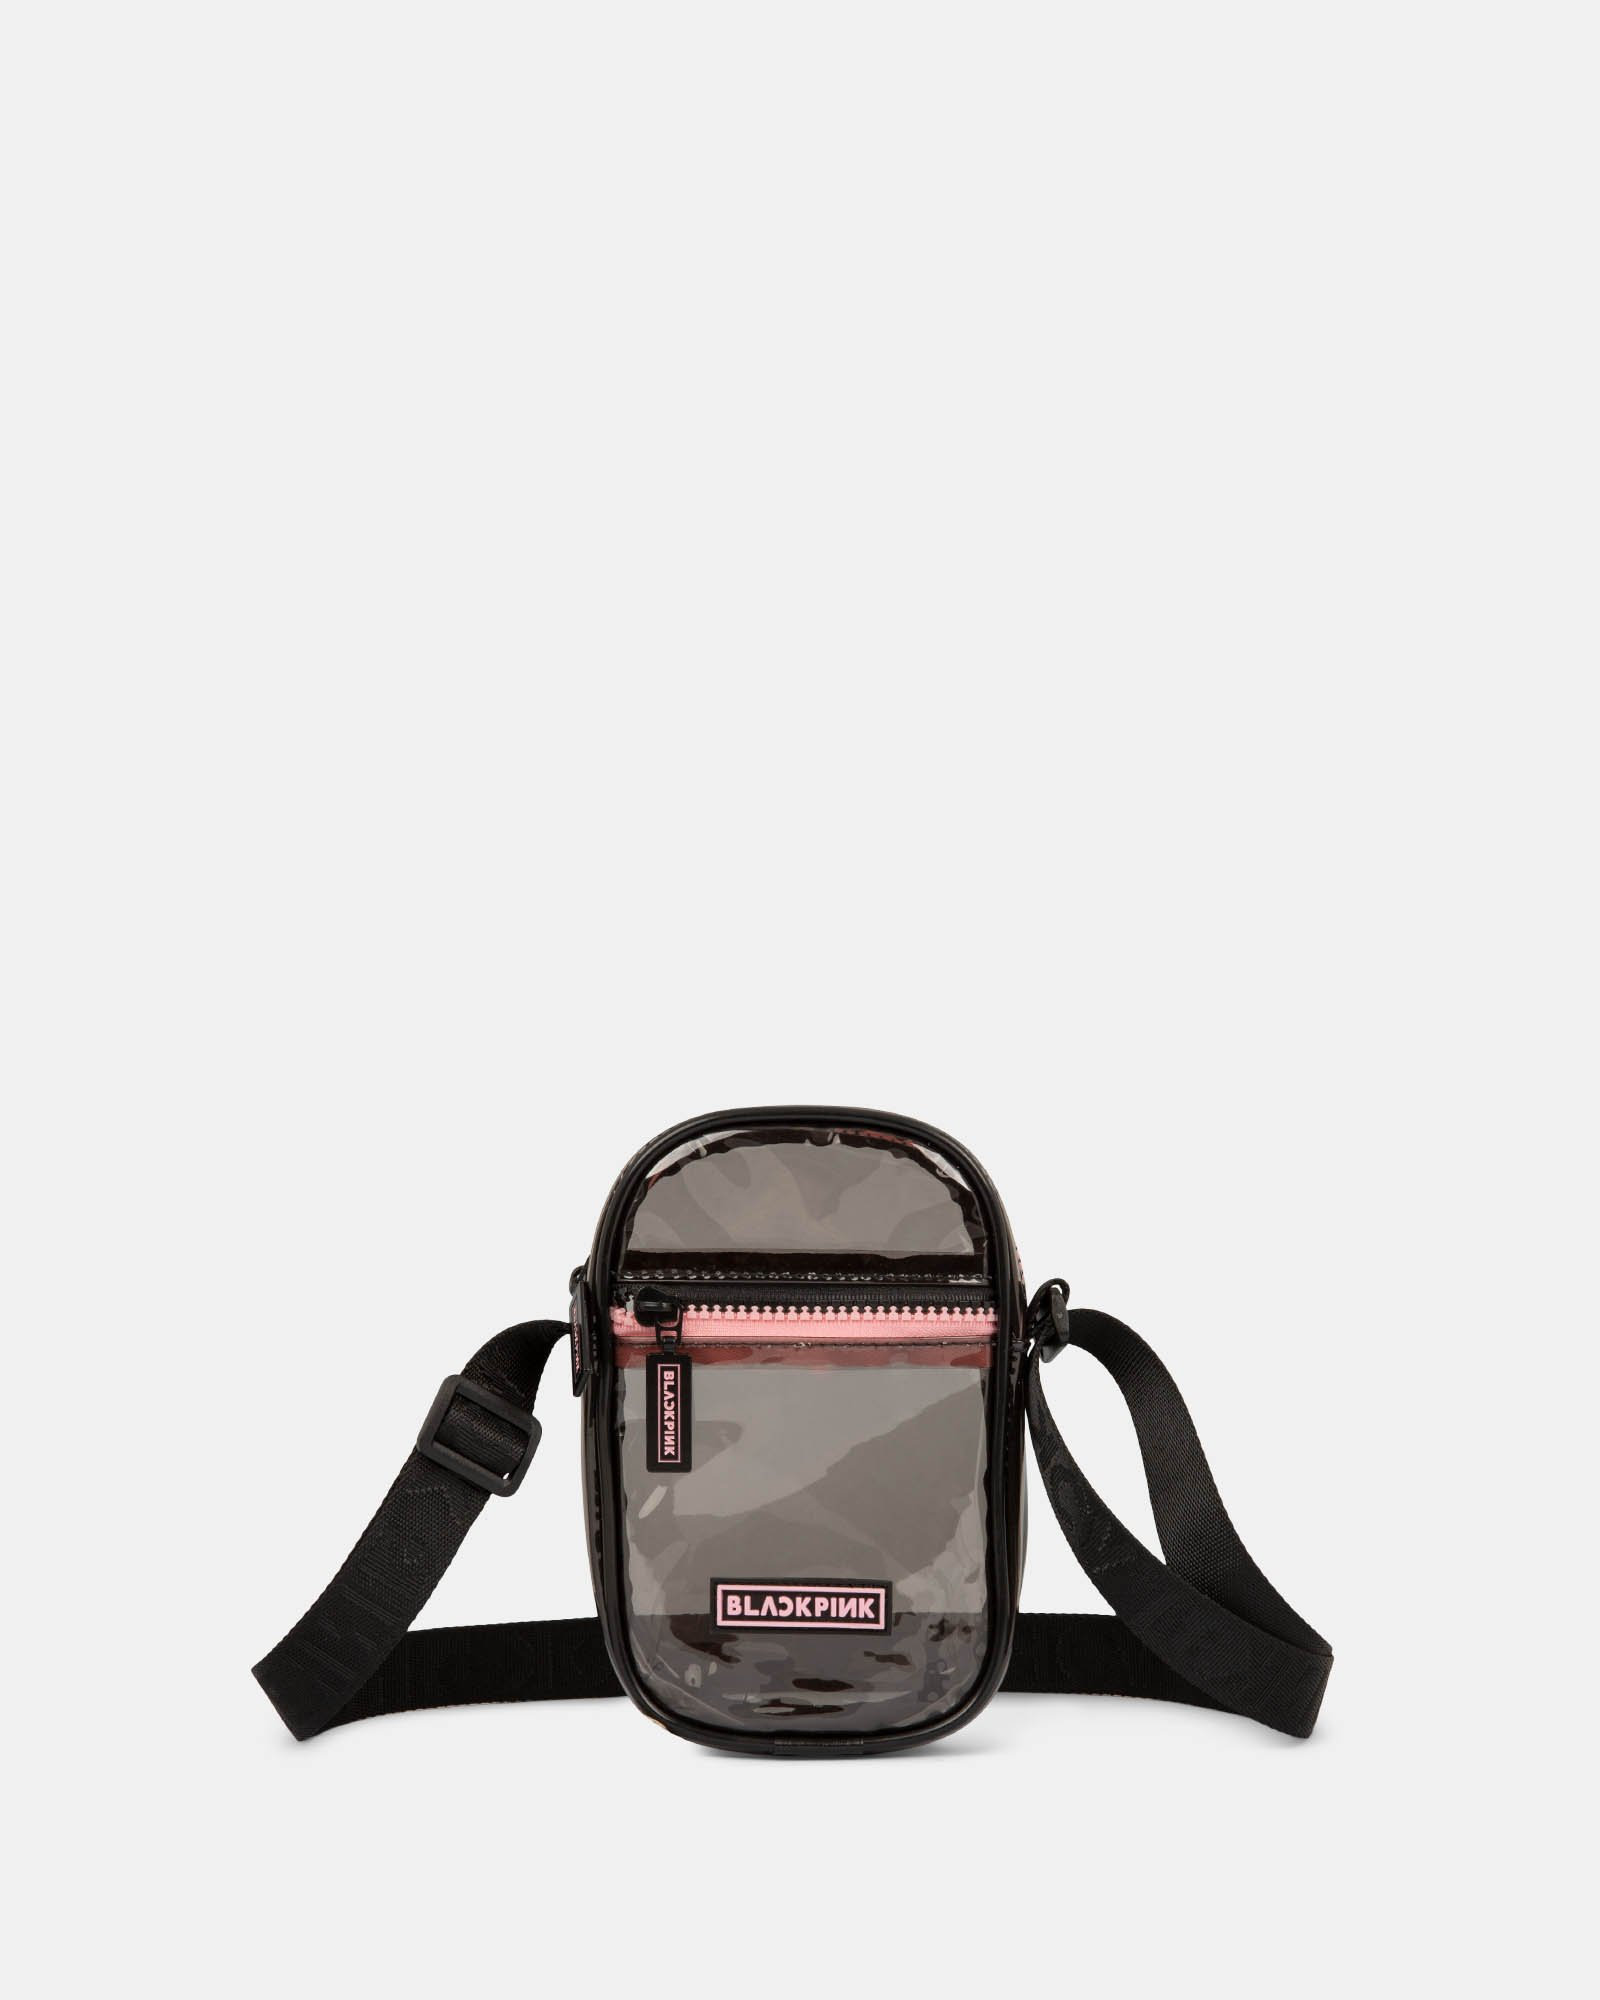 Blackpink - Clearly You Collection -Black-tinted see-through mobile case with pink zippers - Black - BLACKPINK - Zoom